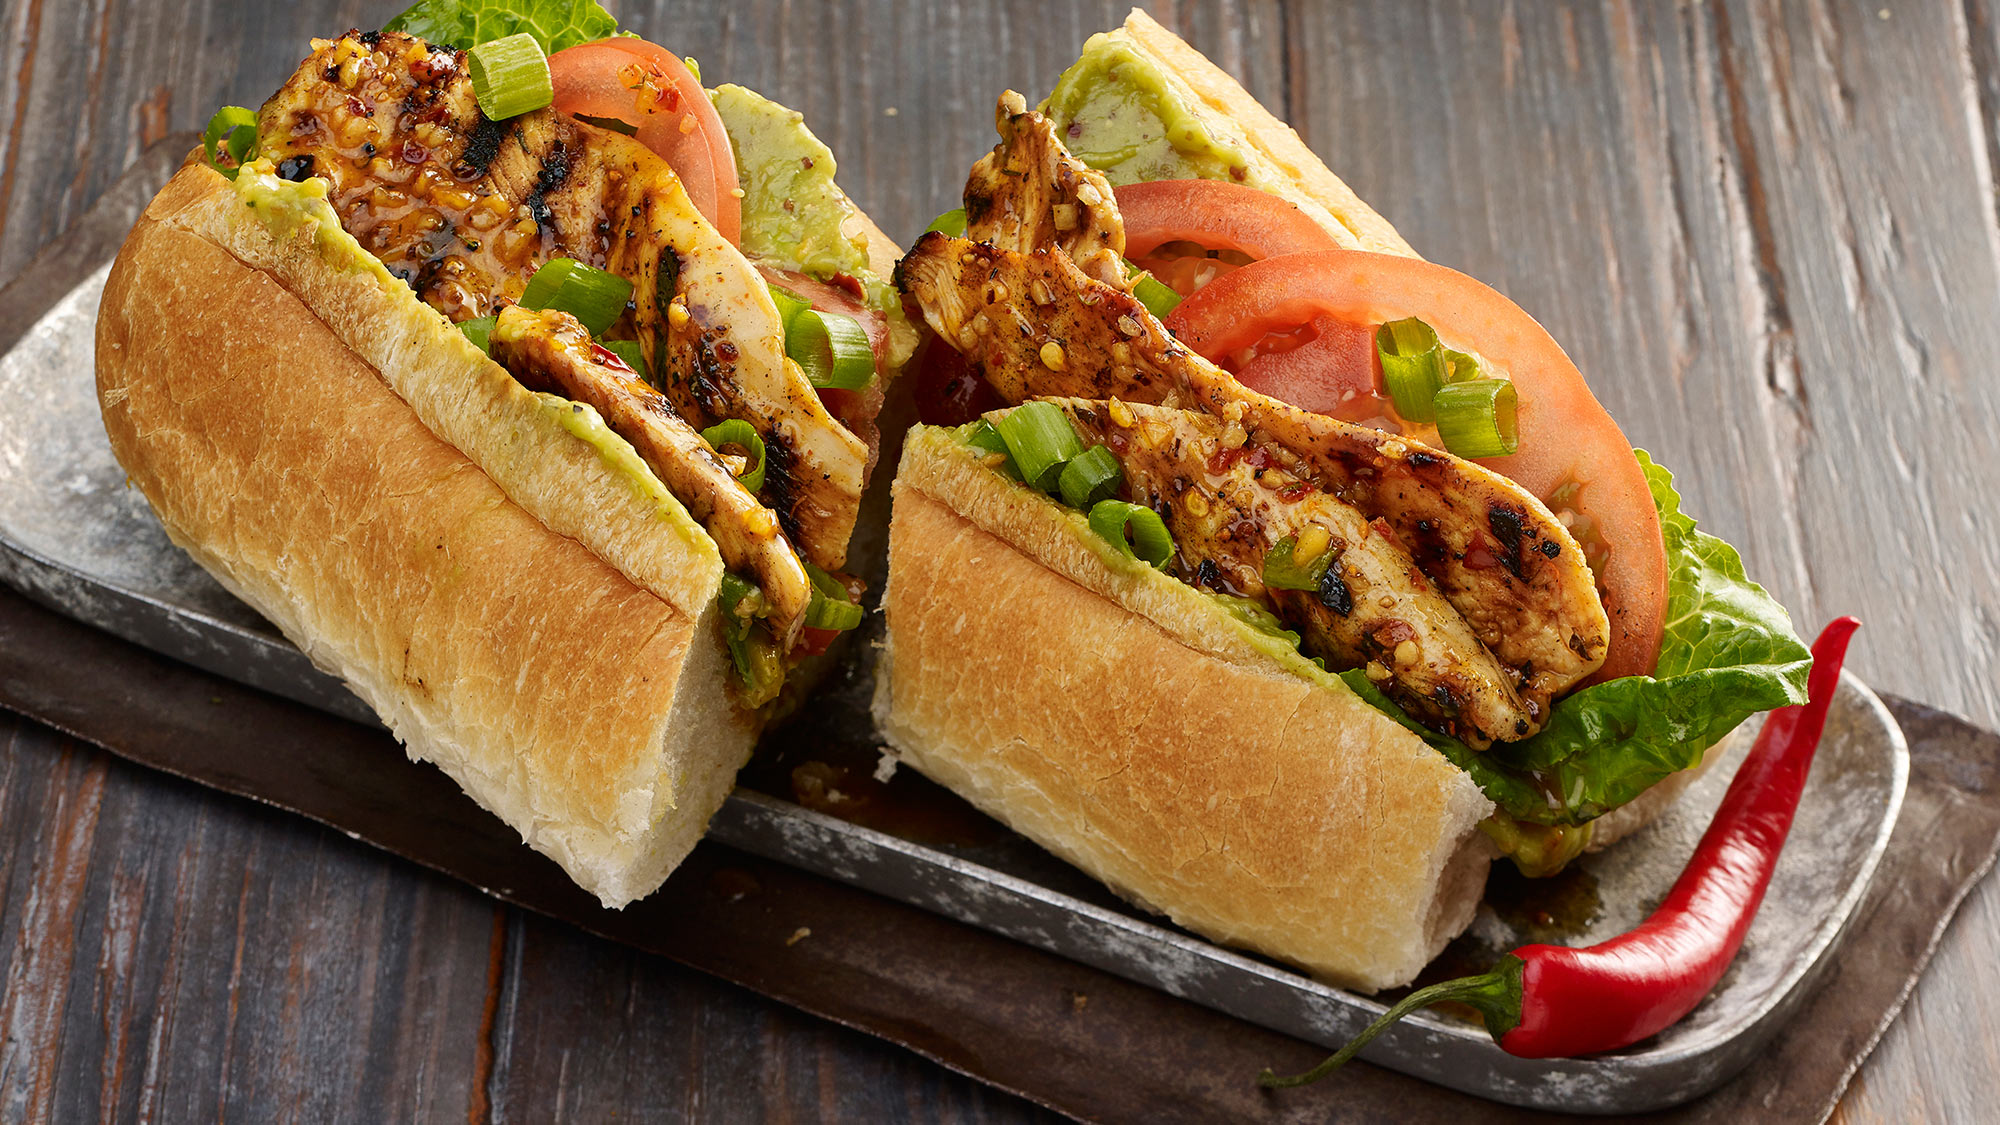 grilled-chicken-po-boy-sandwich-with-spicy-creole-mustard-sauce.jpg